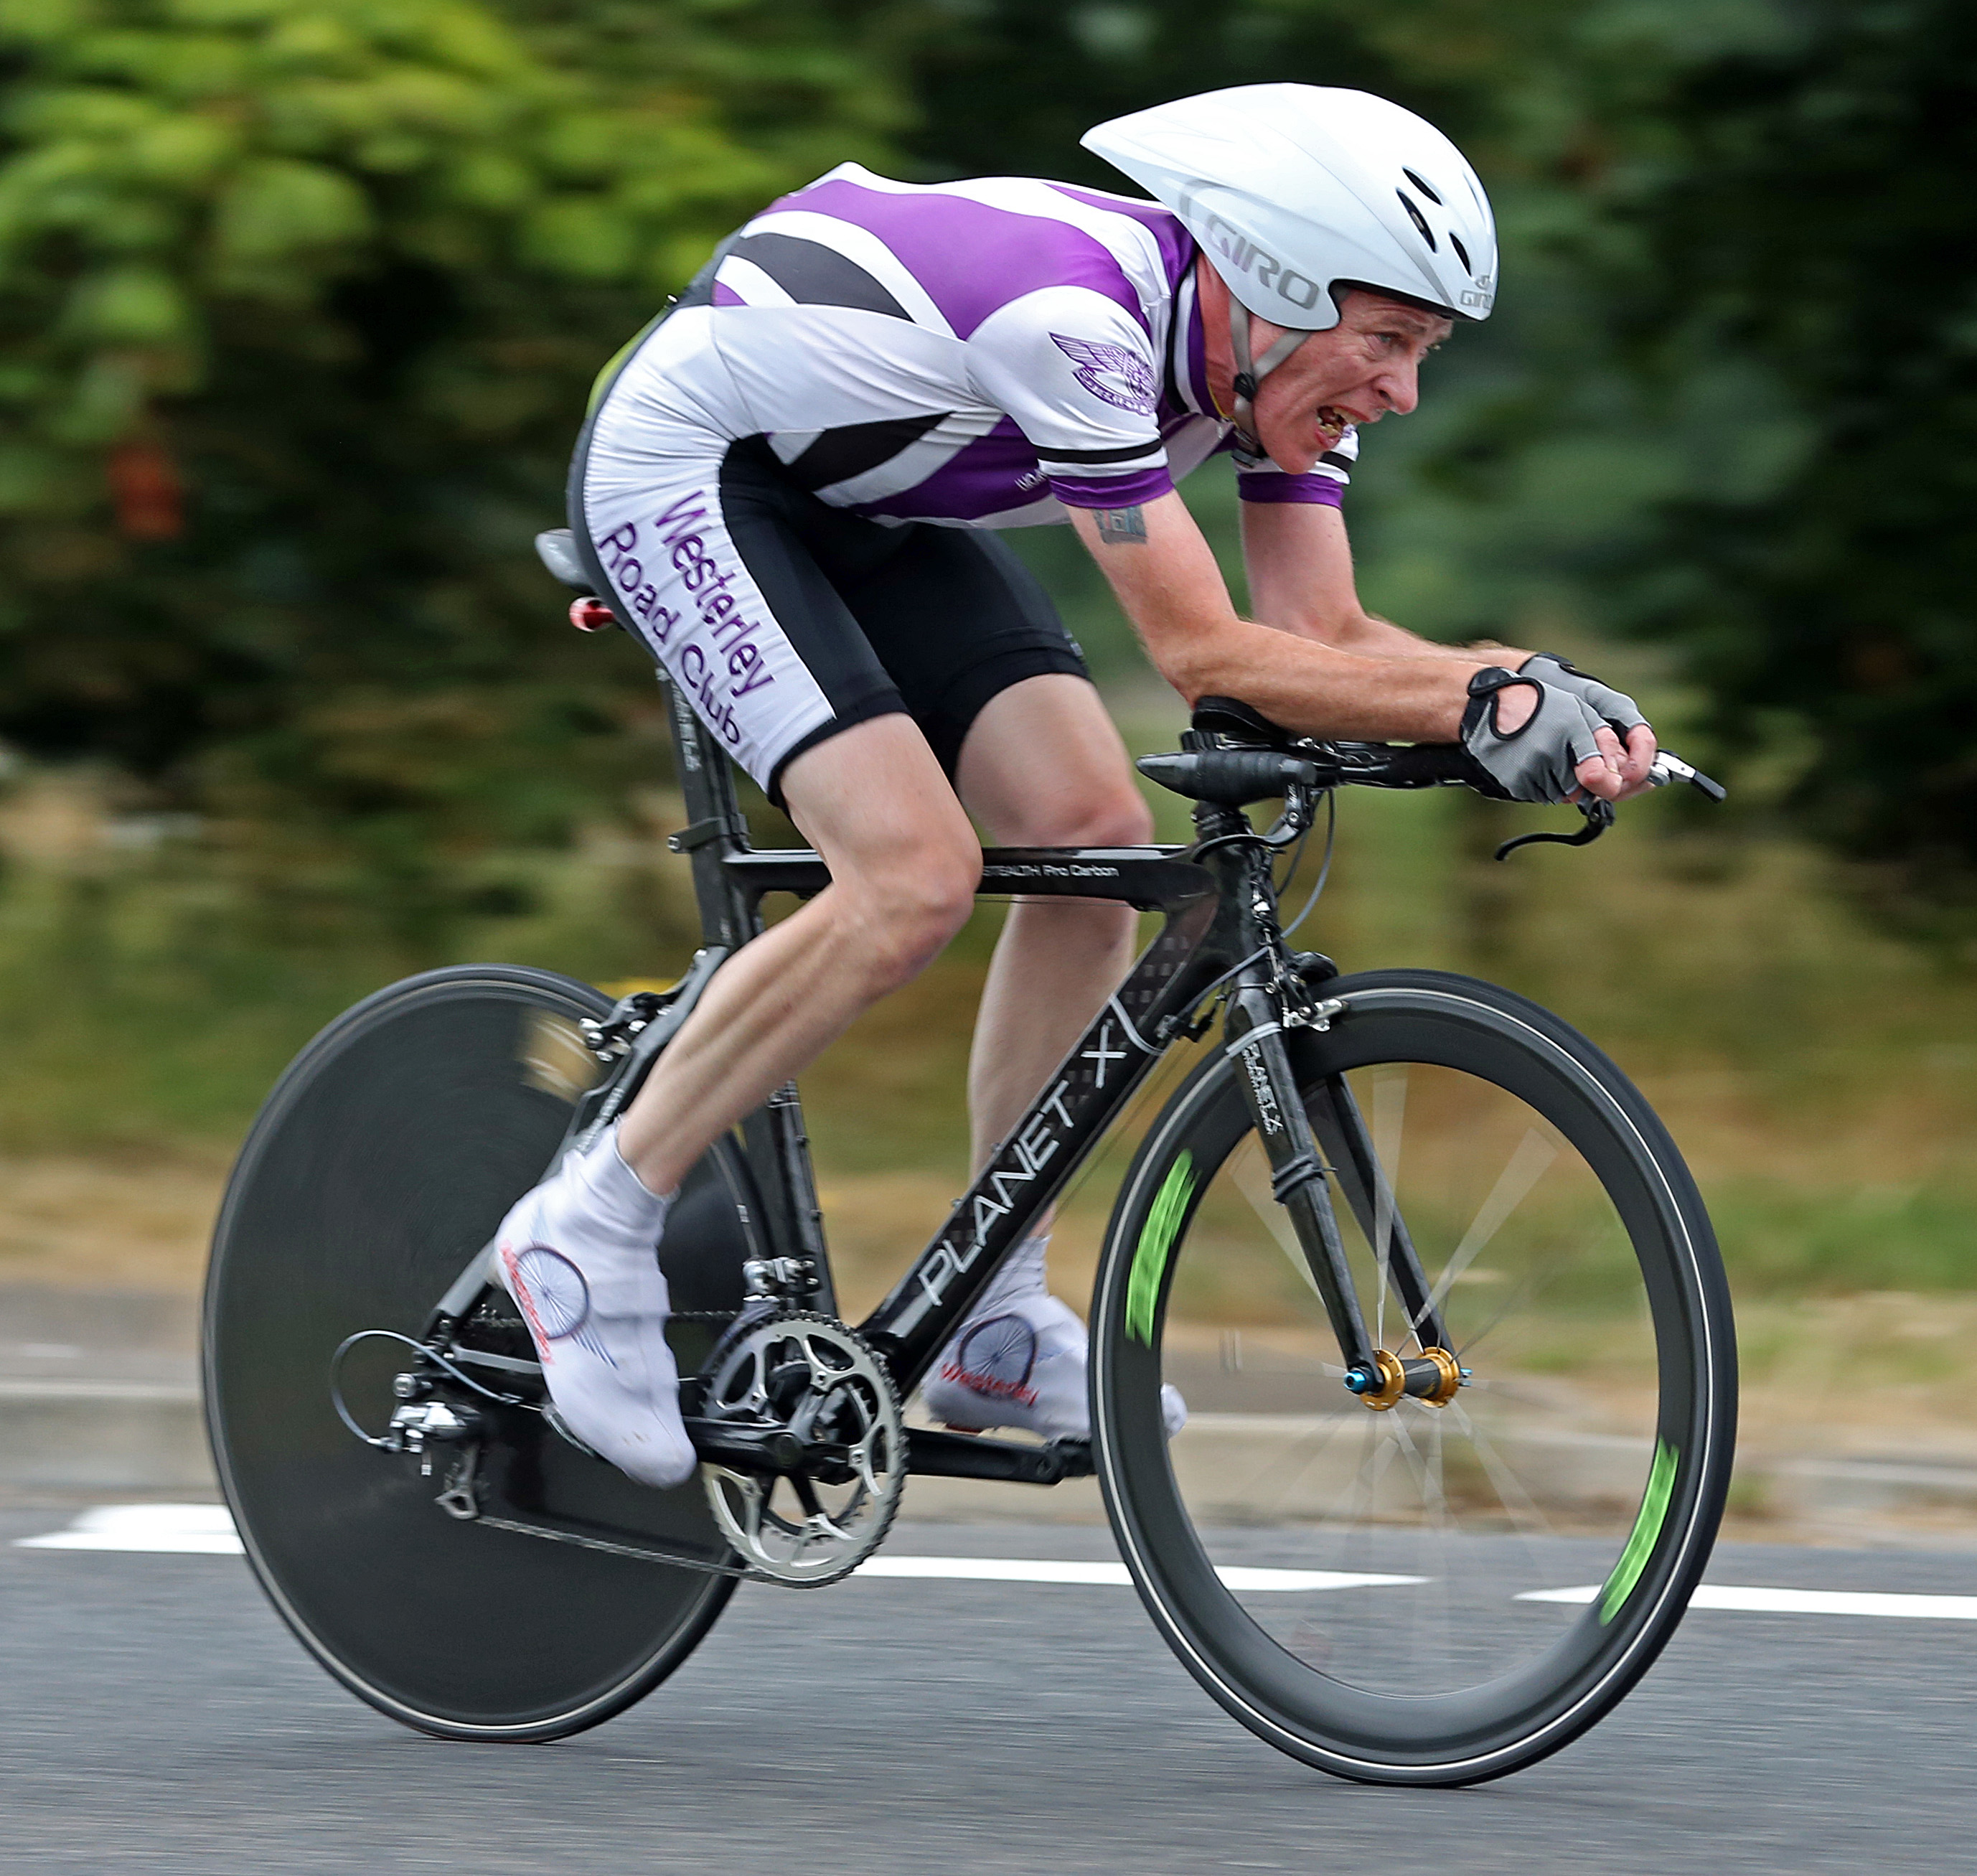 Hillingdon Series – Event 6: Results